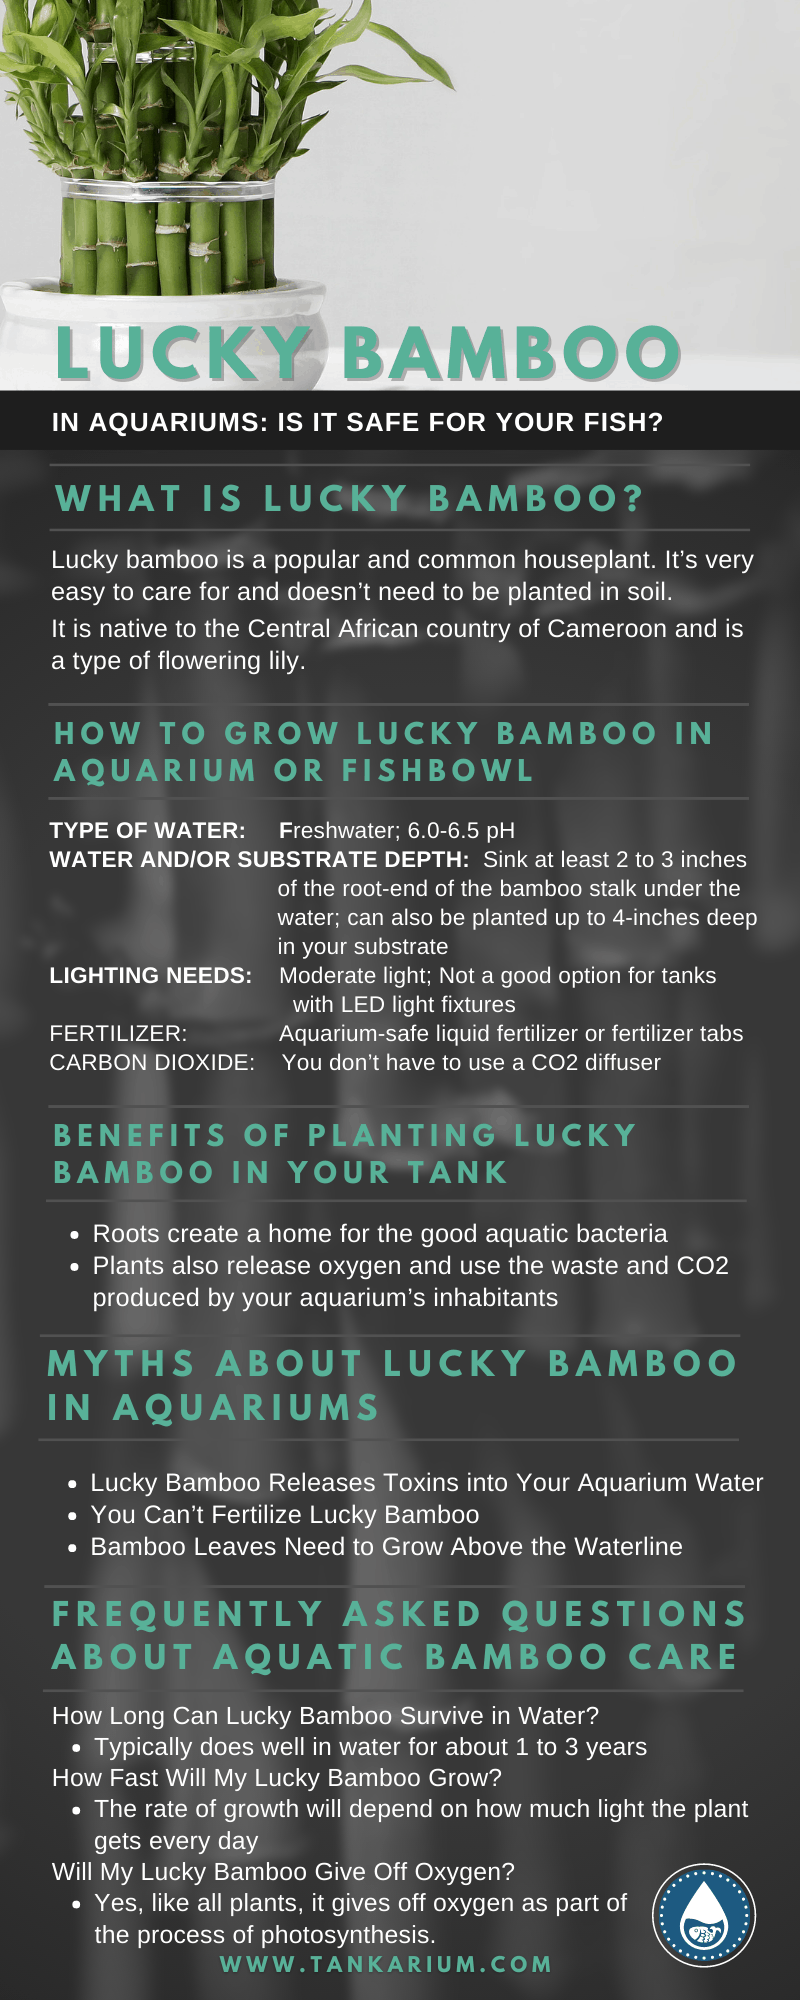 Lucky Bamboo in Aquariums: Is it Safe for Your Fish? - Infographic